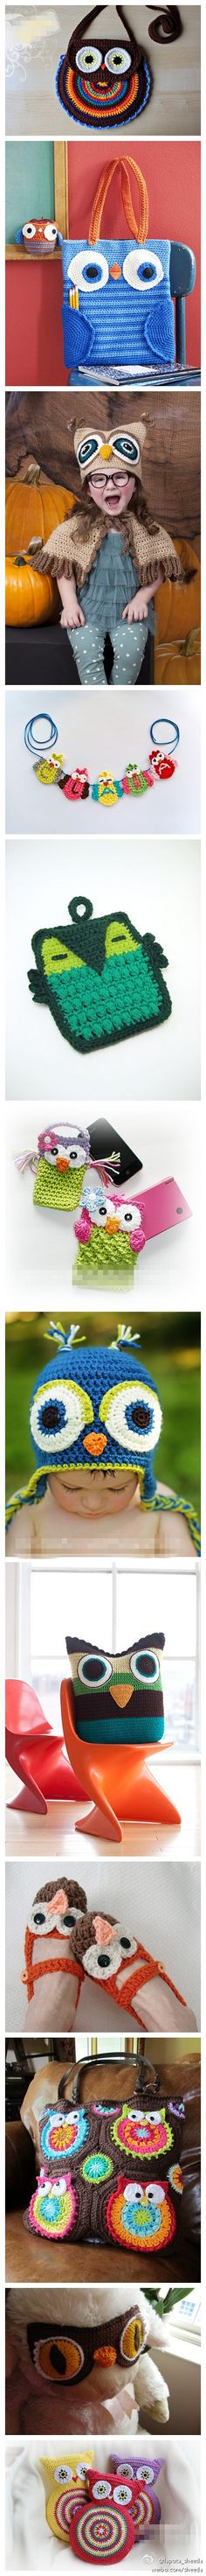 Okay, DANGIT! I'm learning how to knit to make a Doctor Who scarf, a knitted Millenium Falcon, and these cute owly things. AND THAT'S IT! I'M DONE AFTER THAT!! STOP SHOWING ME CUTE THINGS TO KNIT!!!